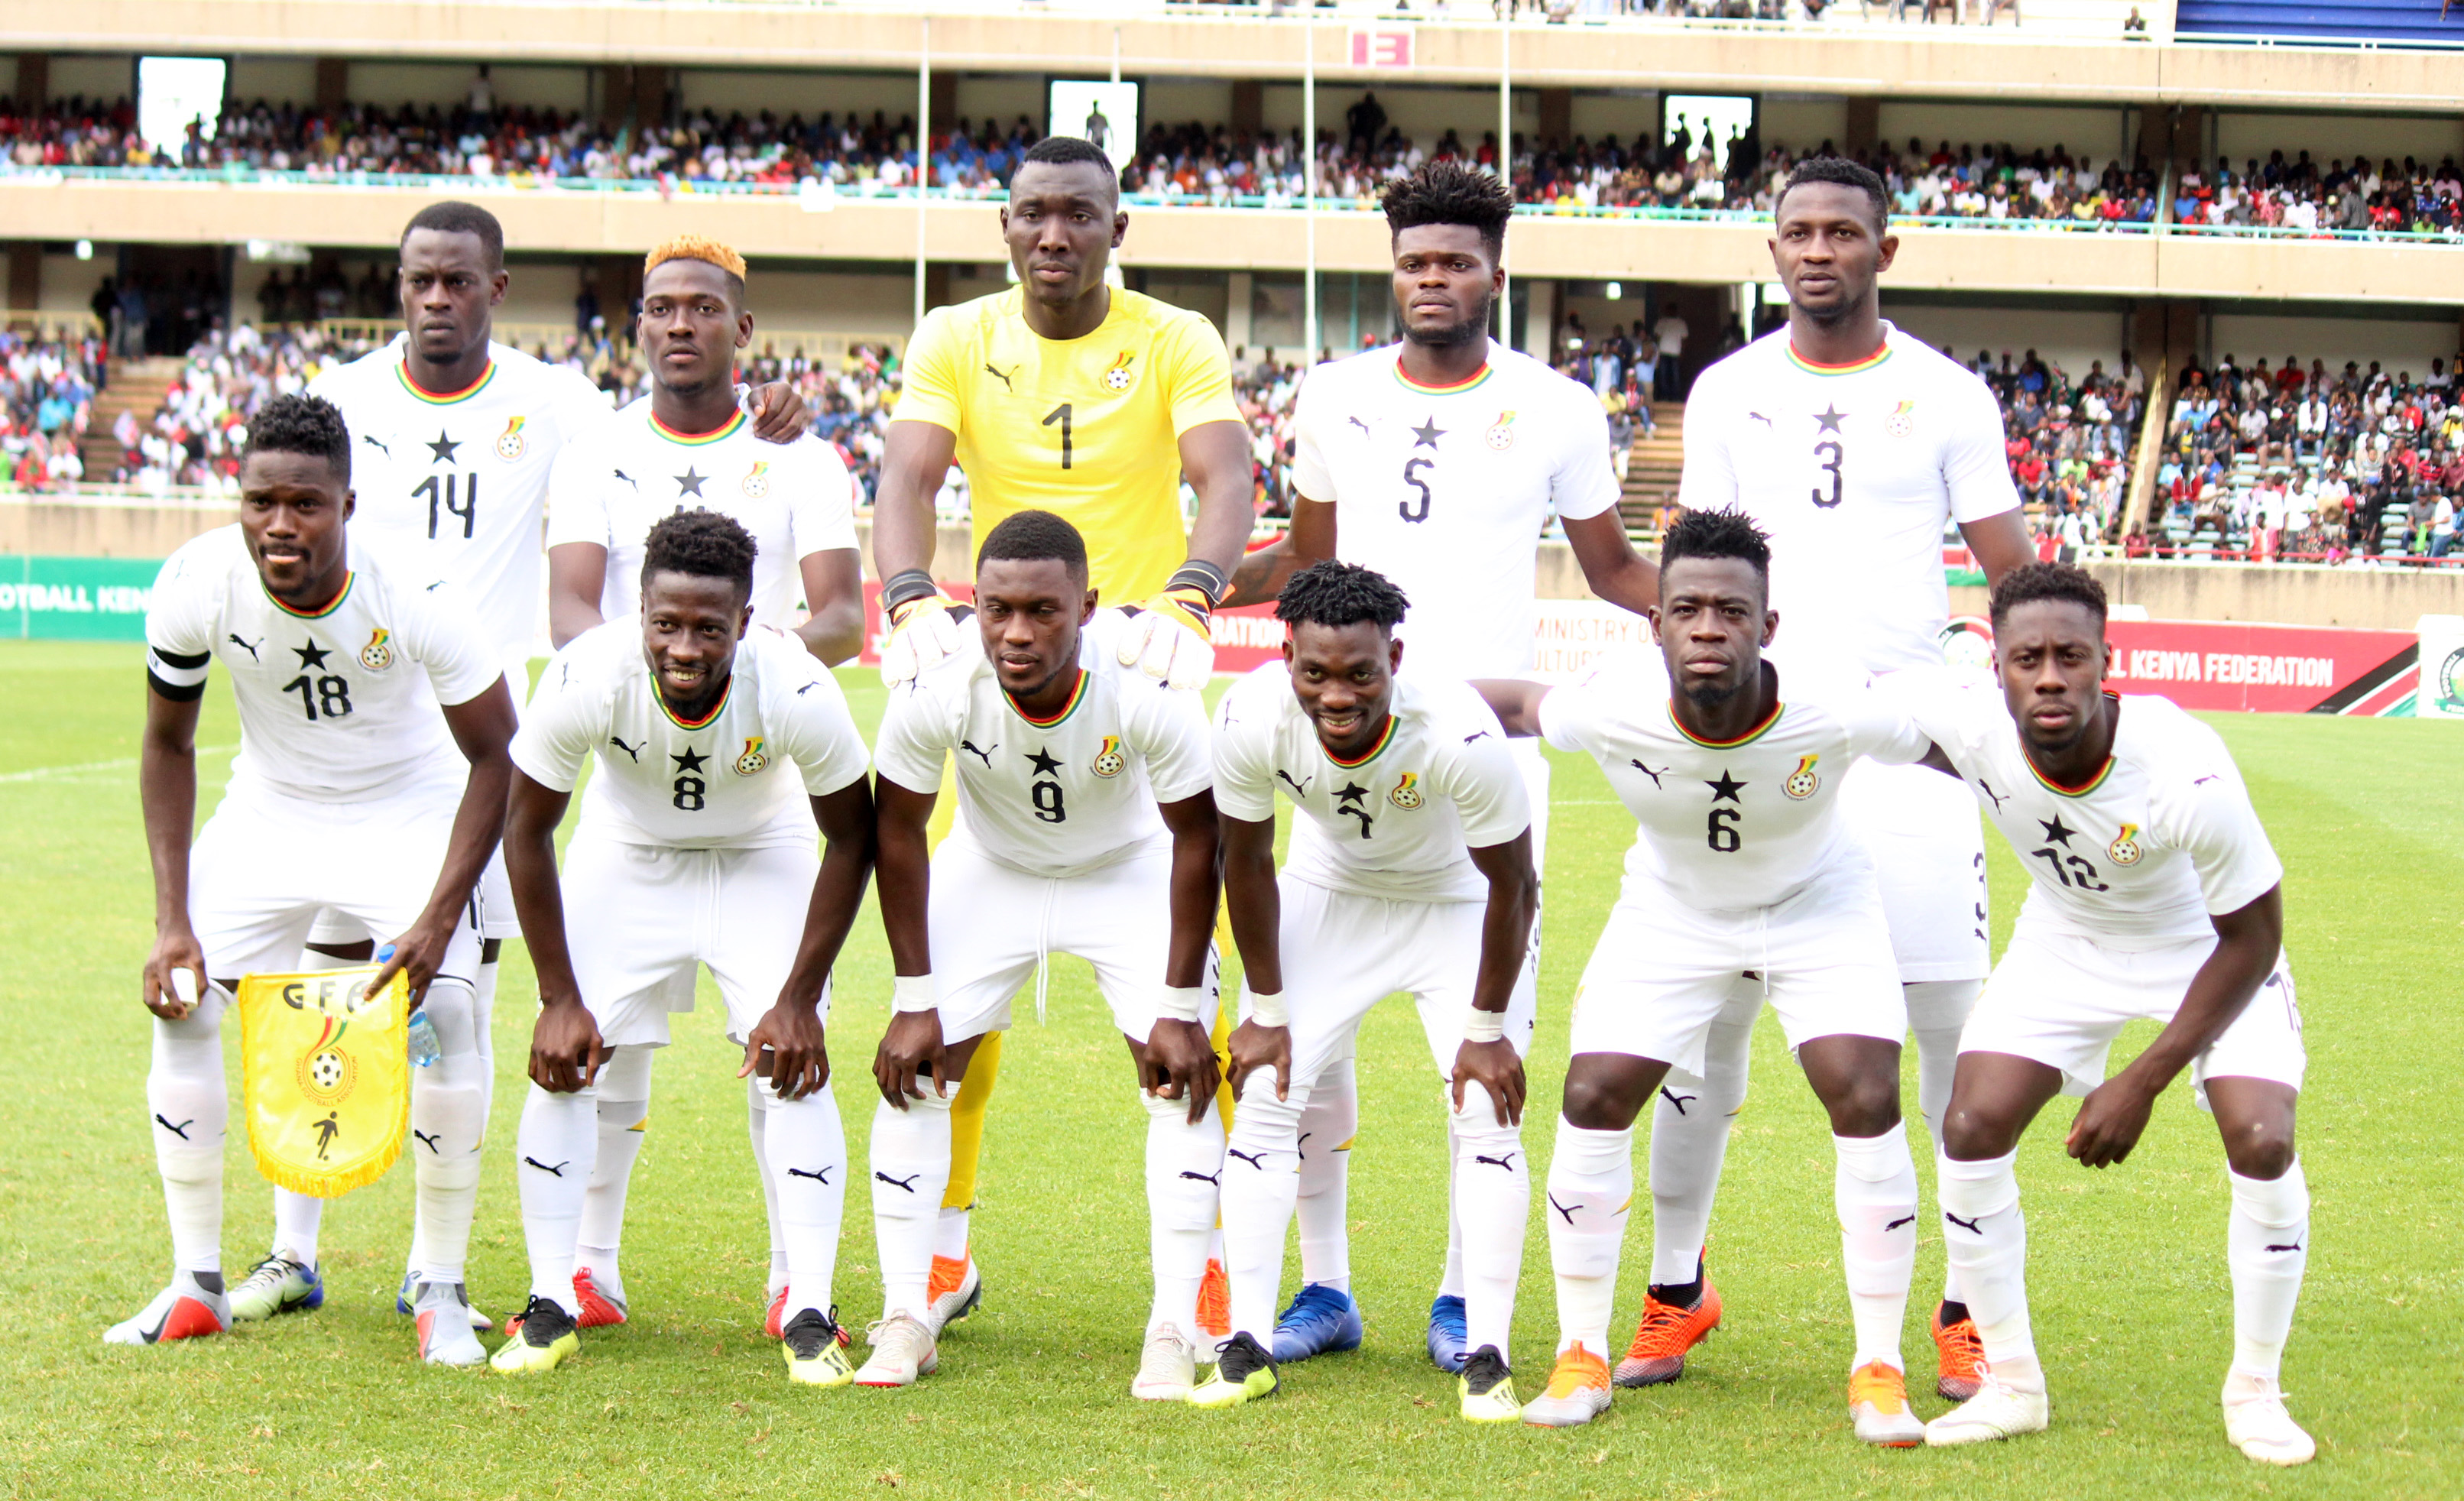 Ghanaian players who played in Kenya expected in training with their European clubs today